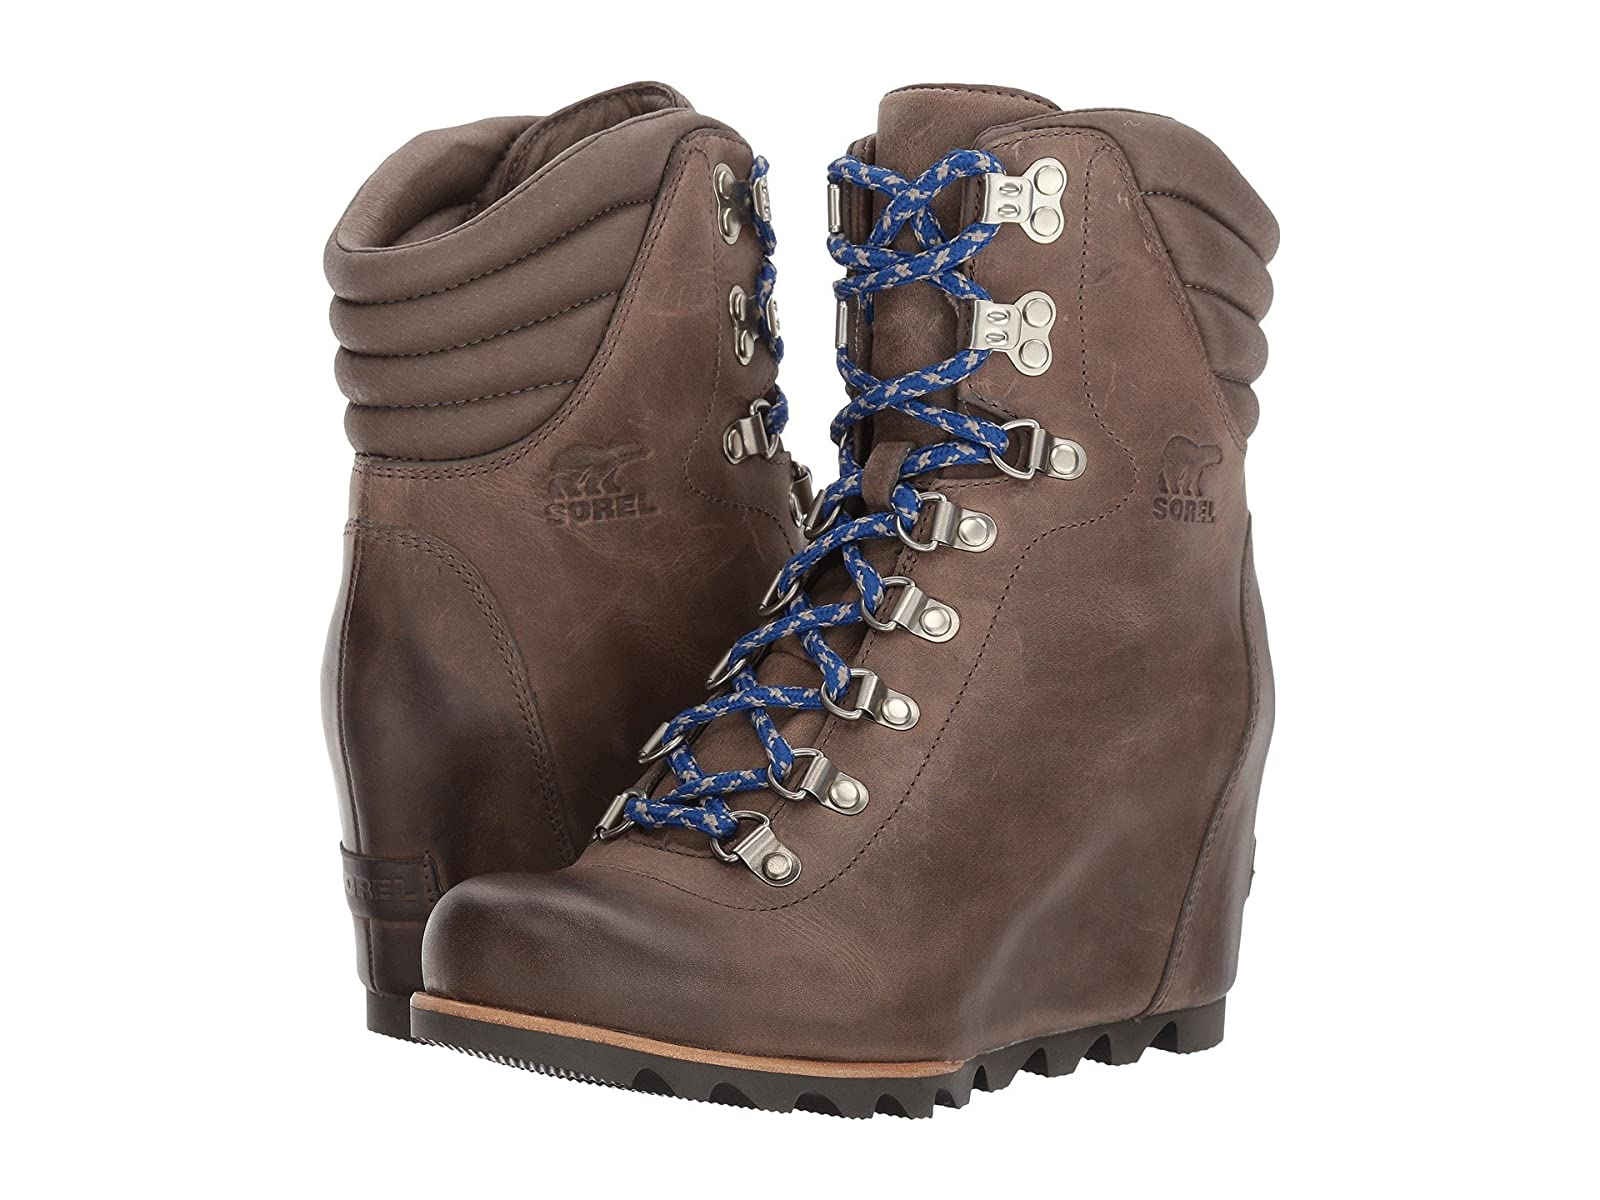 SOREL Conquest WedgeCheap and distinctive eye-catching shoes